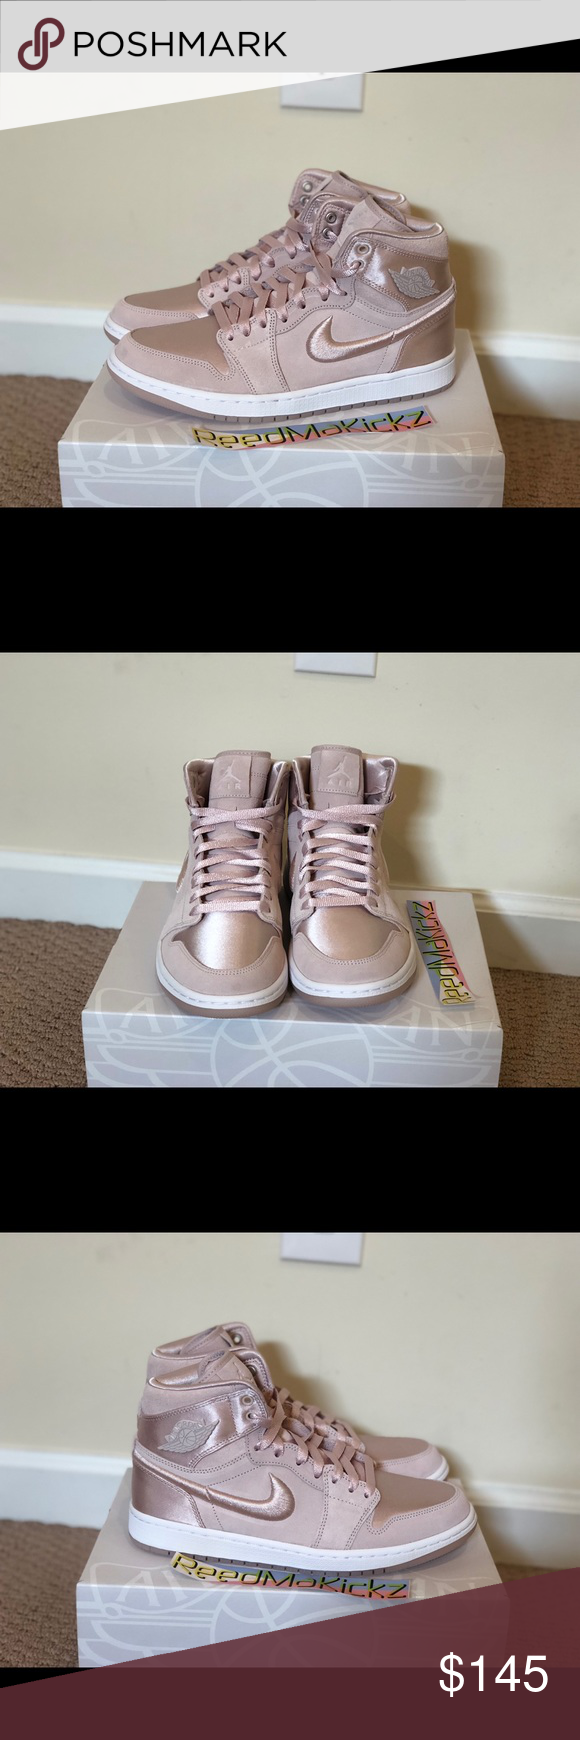 Nike air jordan 1 retro high SOH Silt red womens 100% authentic! No trade  brand new   never worn womens sizes style code AO1847 650 Nike Shoes  Sneakers 256194fe59e5